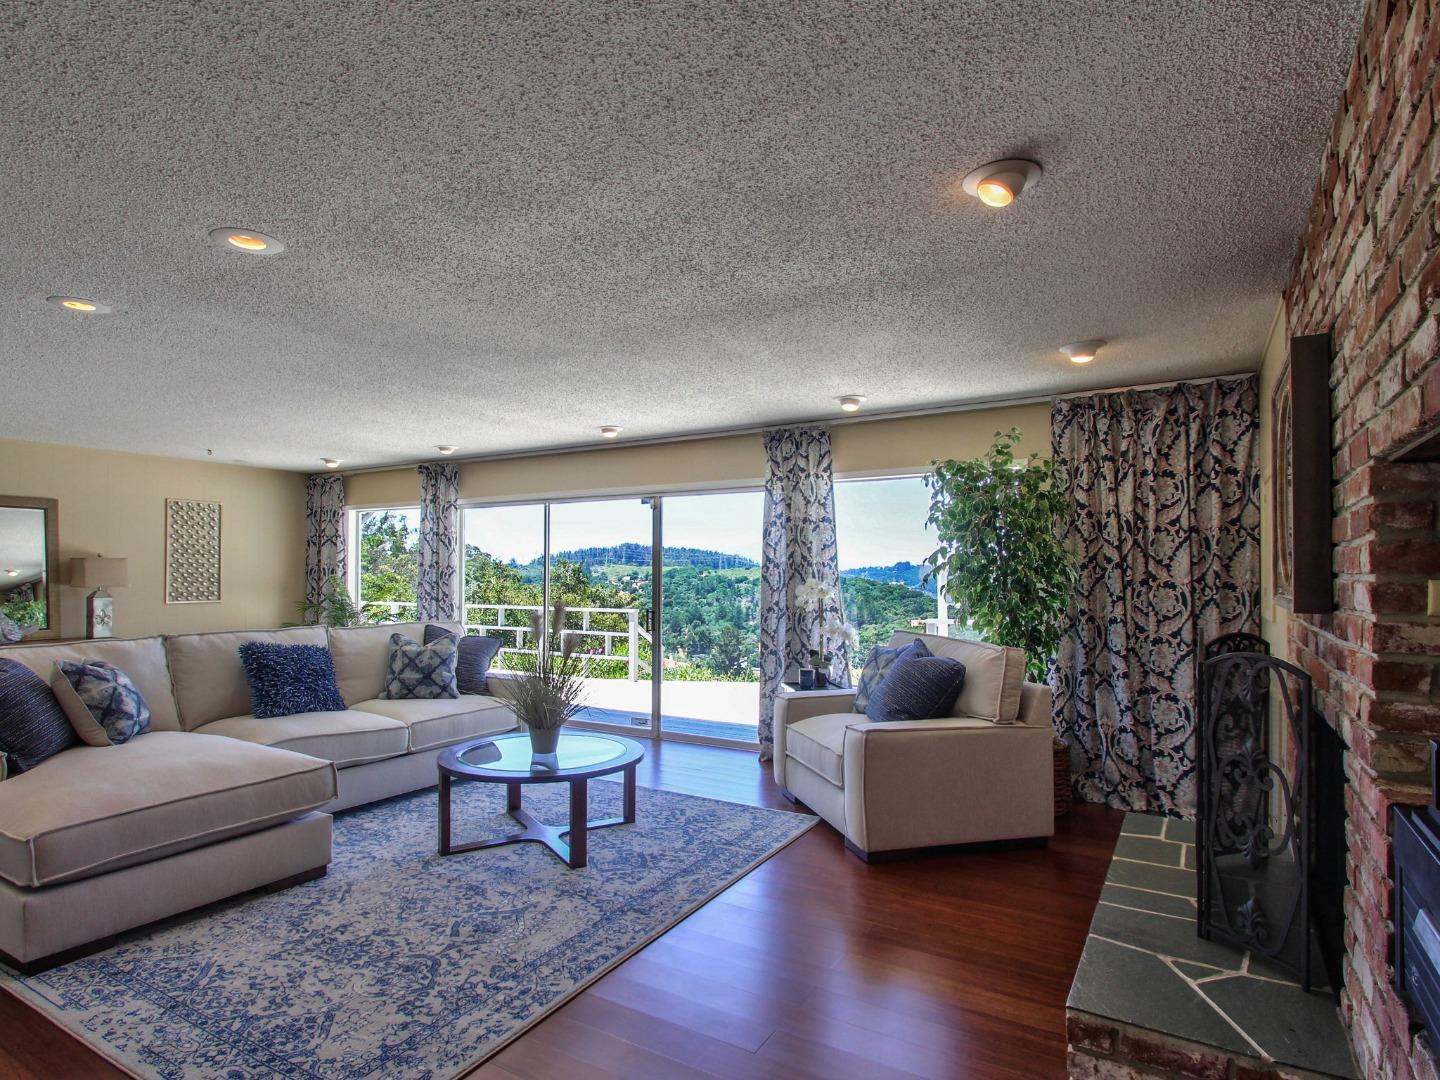 Single Family Home for Sale at 191 Aromas Road Aromas, California 95004 United States